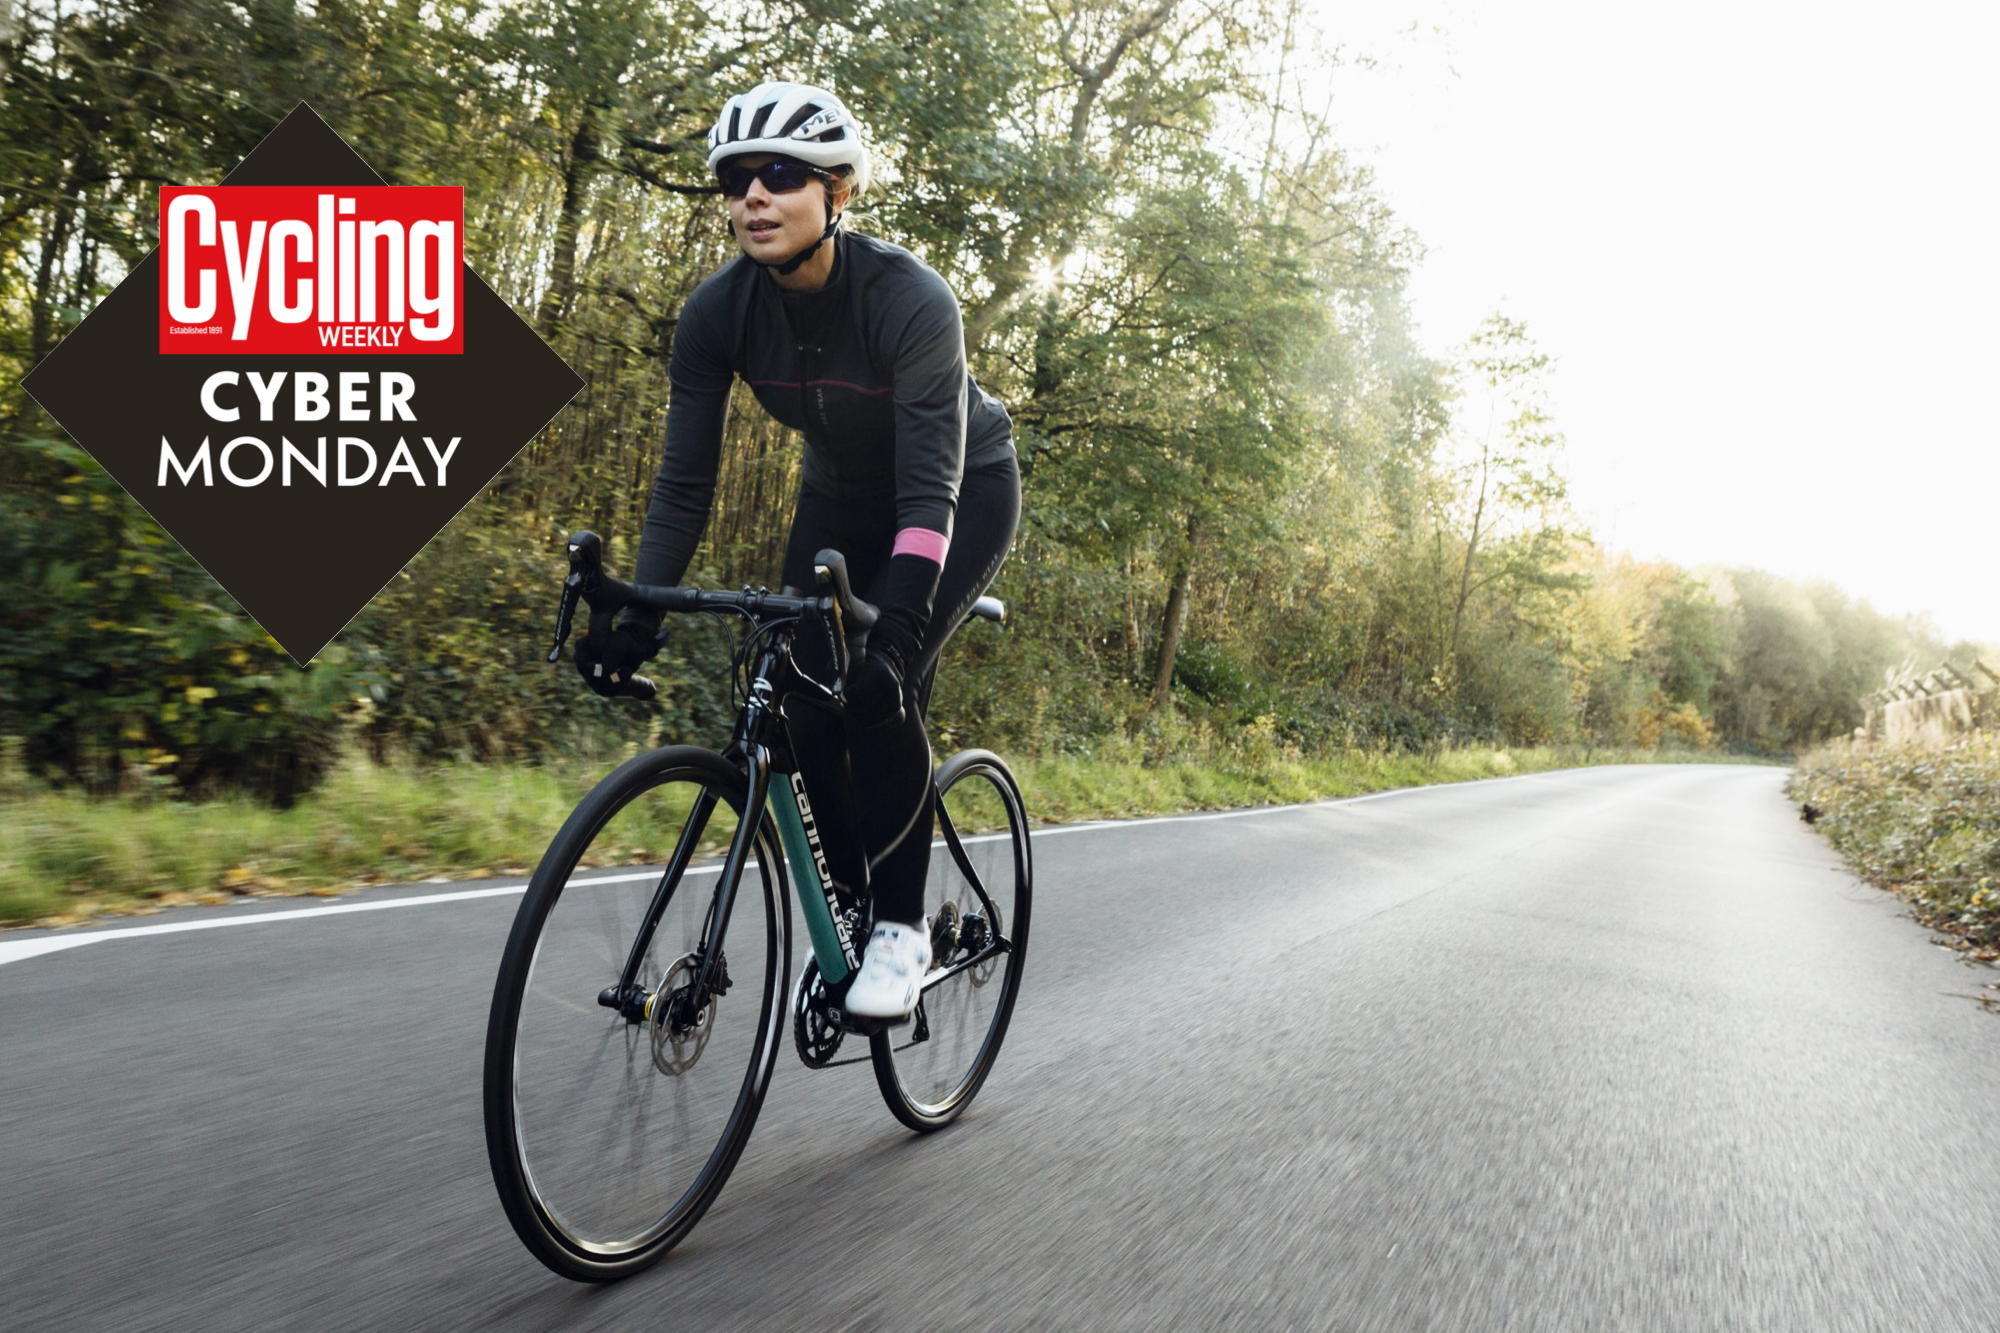 Best Wiggle Cyber Monday deals: the latest deals and offers for cyclists - Cycling Weekly